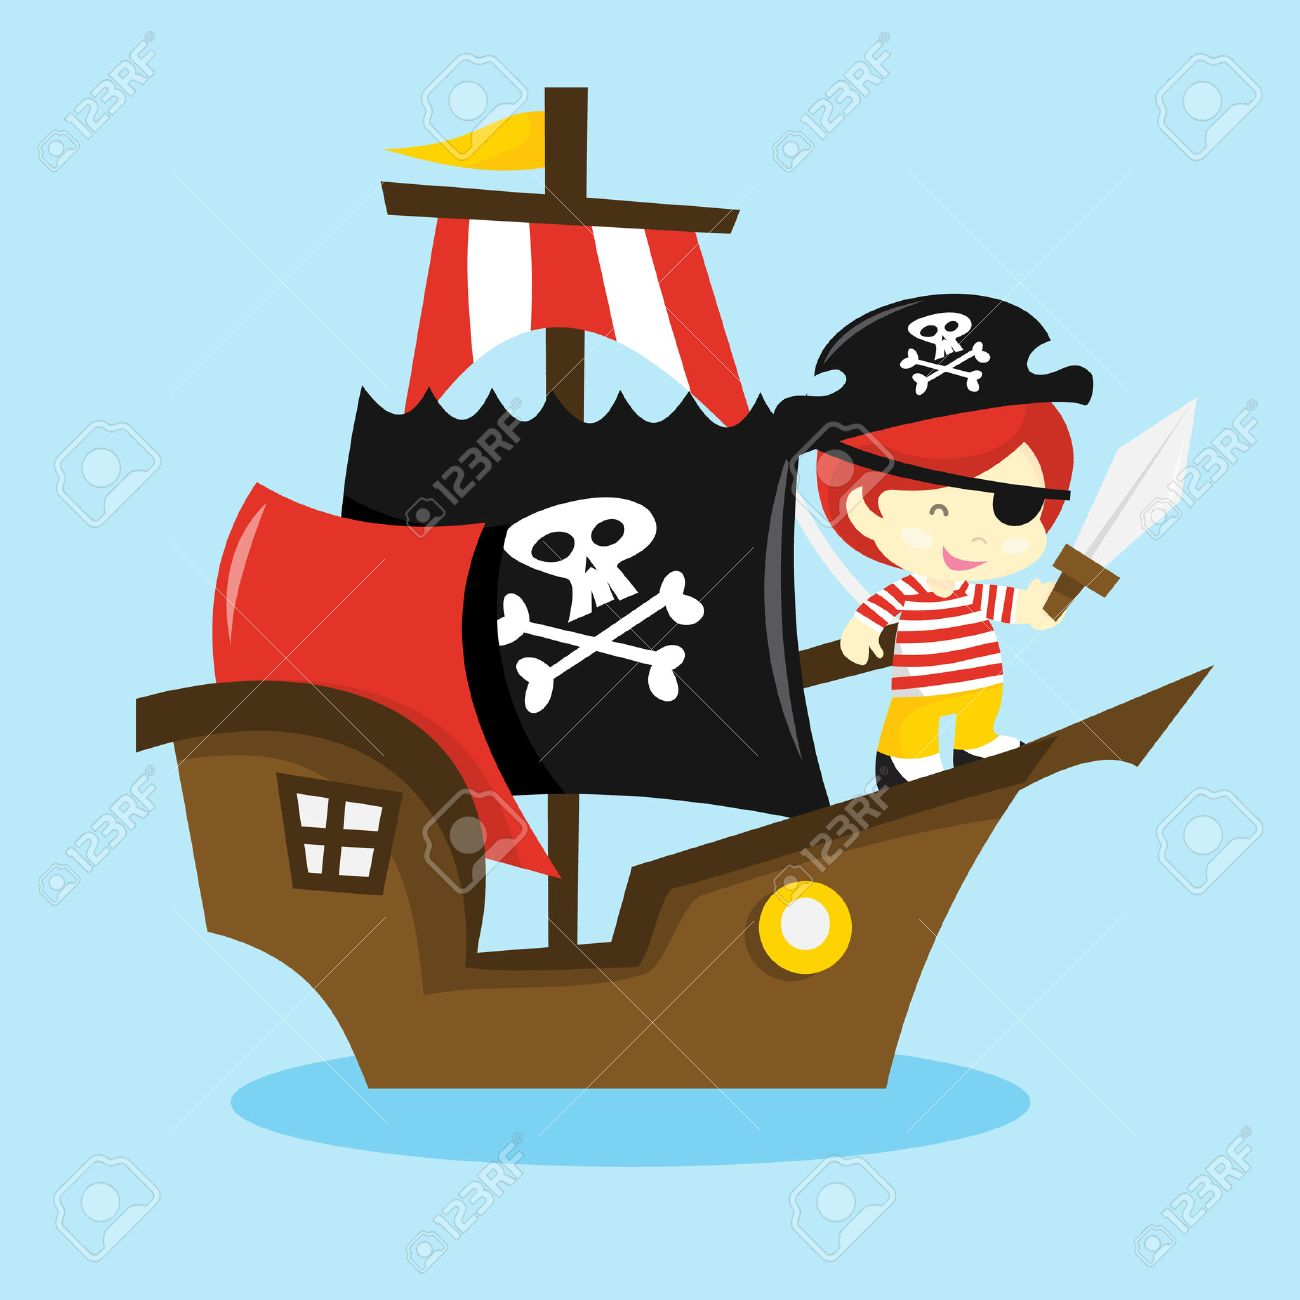 a cartoon vector illustration of a pirate kid on a pirate ship